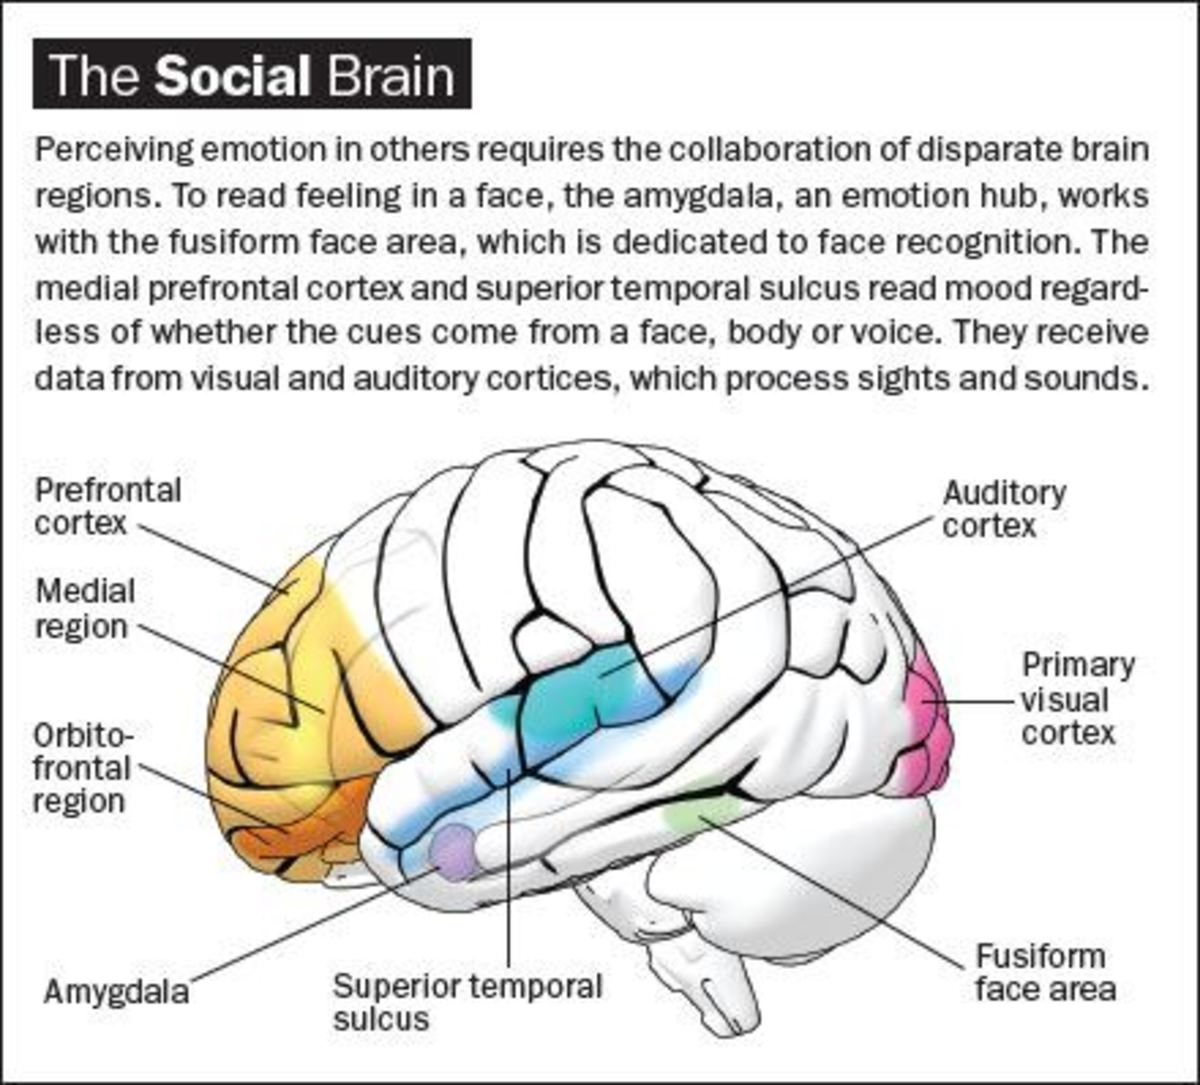 social-brain-and-role-of-play-in-its-development